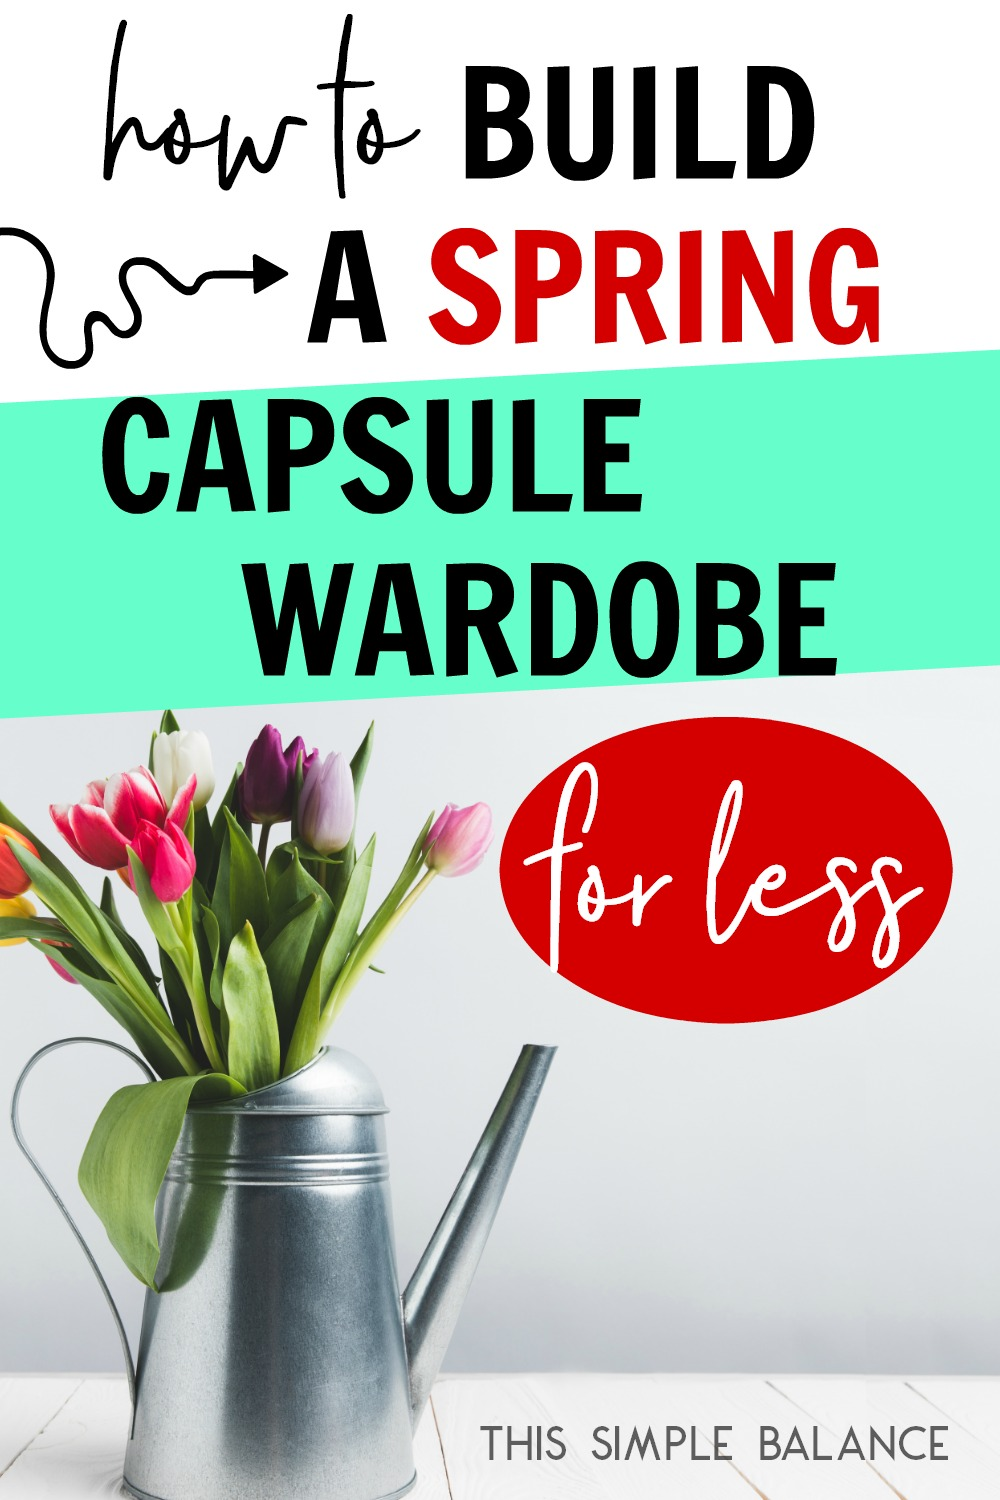 Simple tips and staple pieces for an affordable spring capsule wardrobe! #capsulewardrobe #minimalist